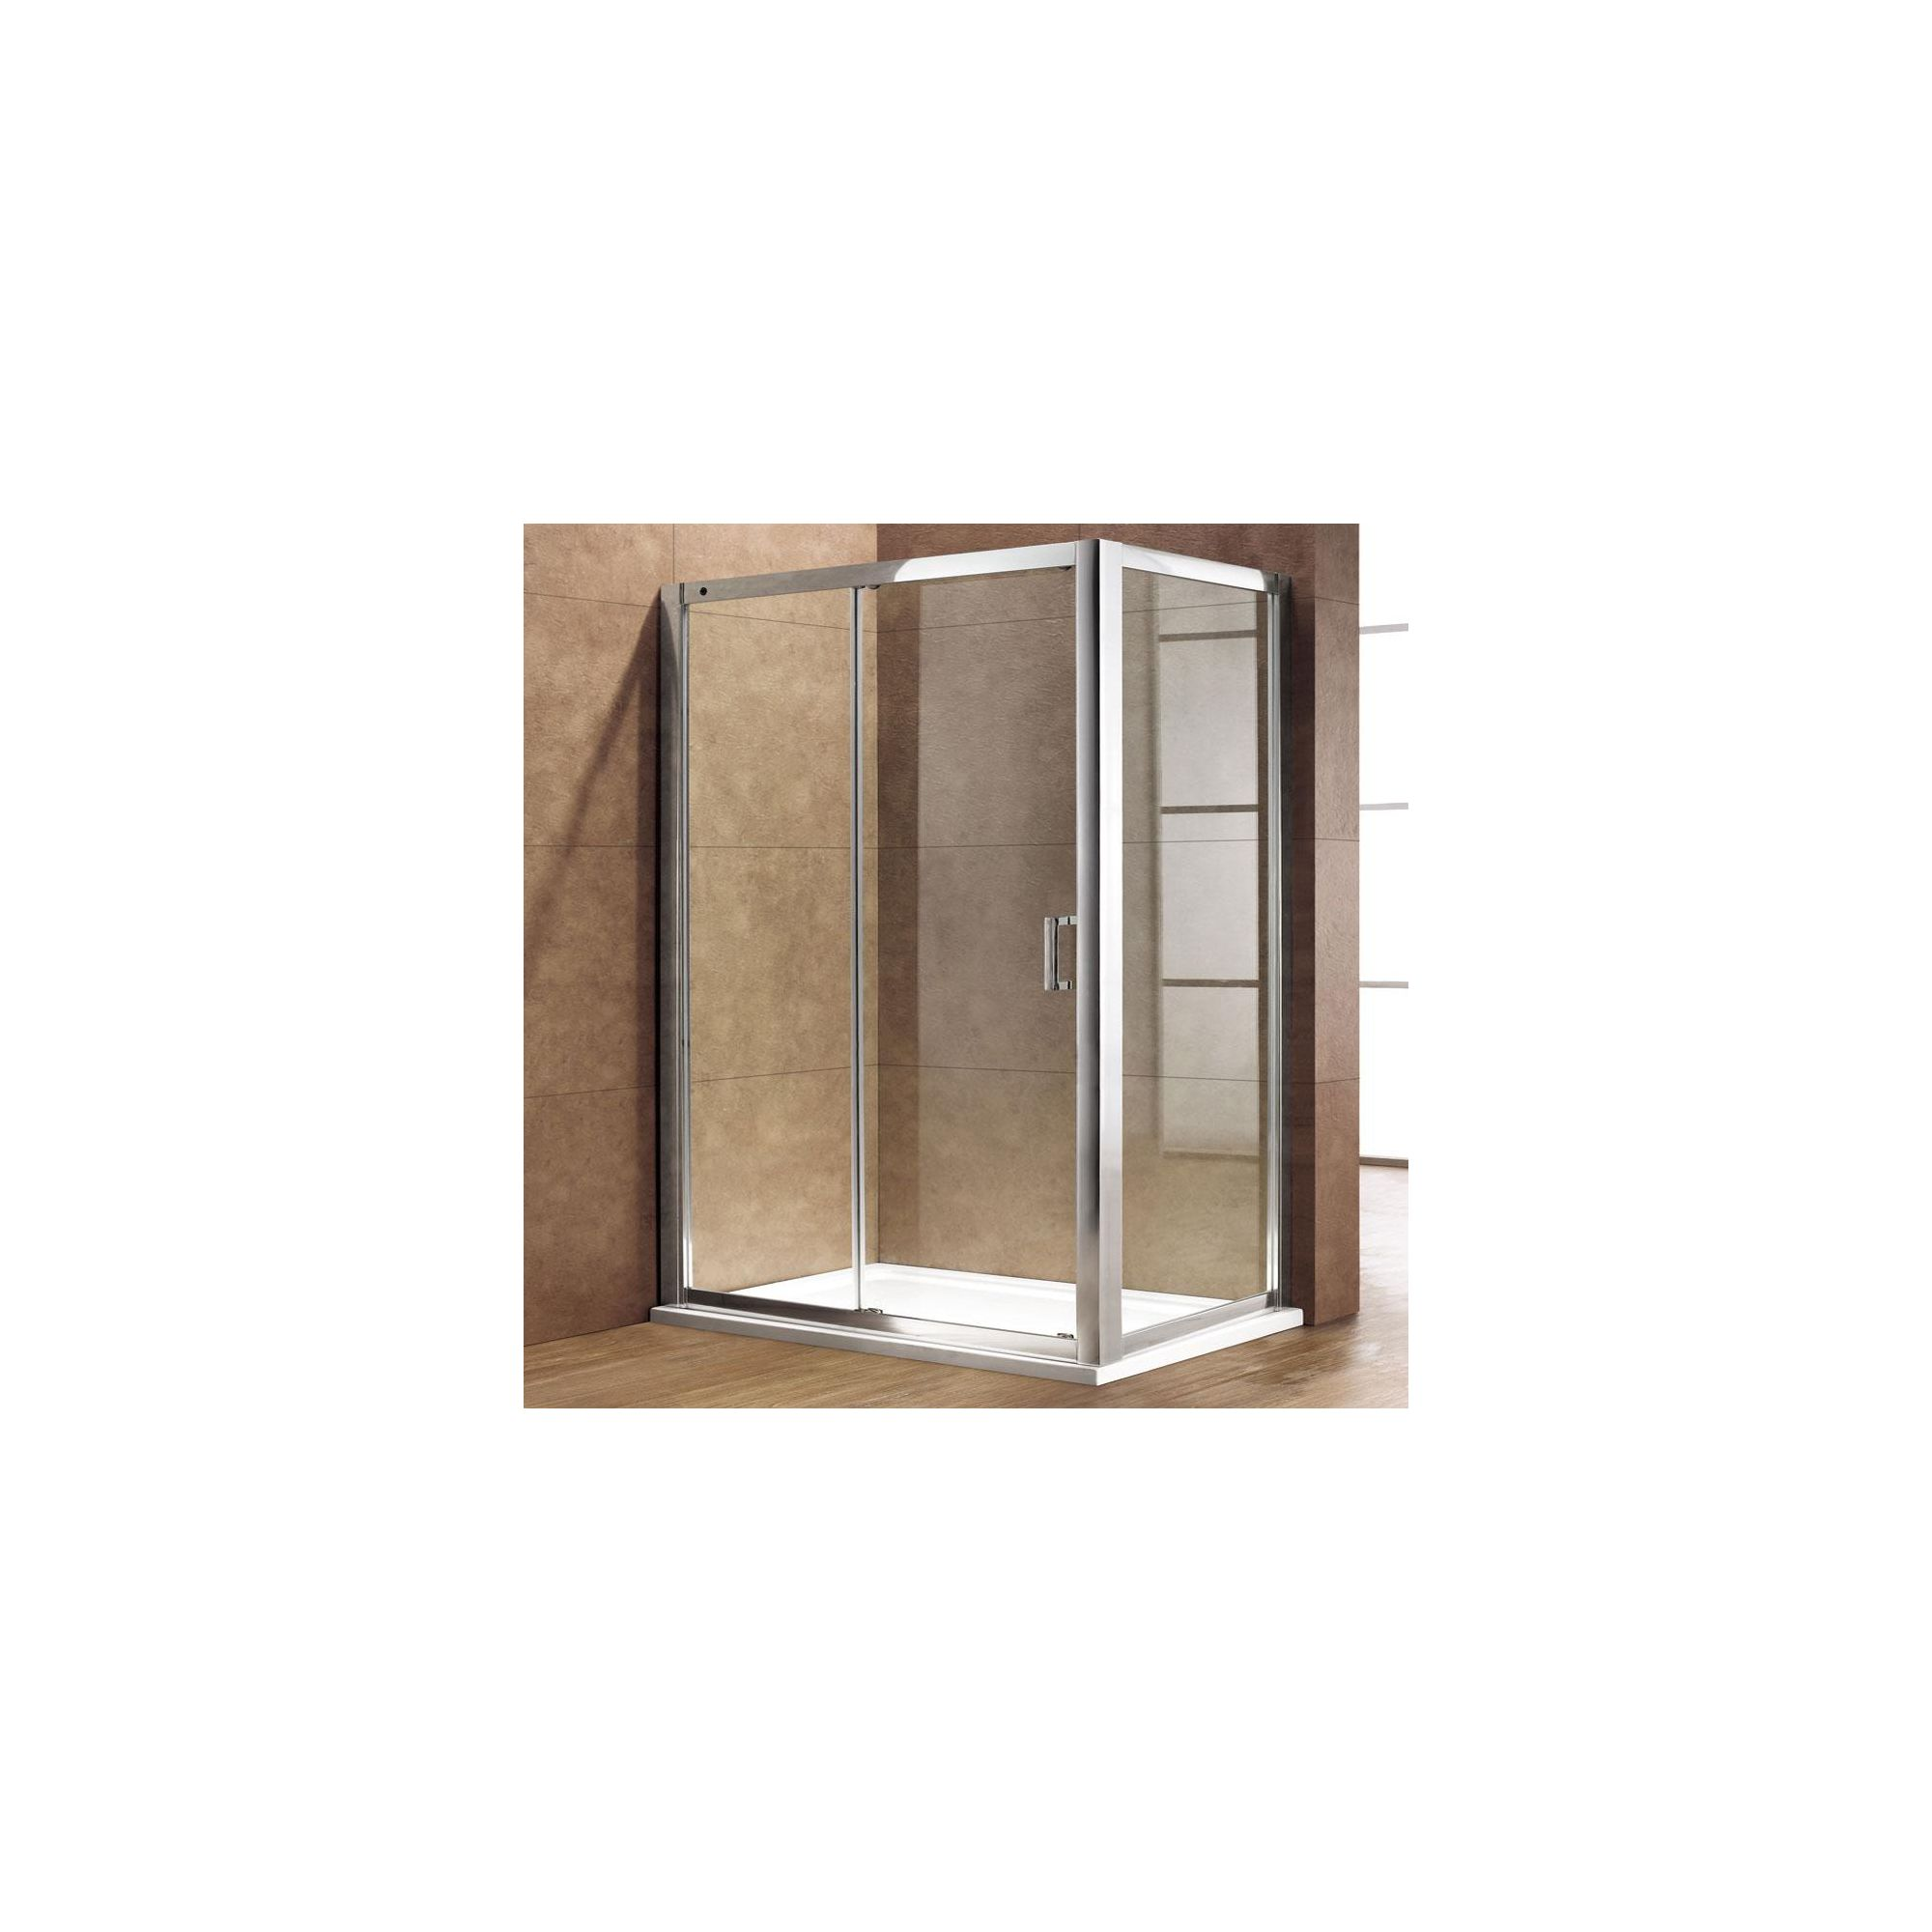 Duchy Premium Single Sliding Door Shower Enclosure, 1000mm x 800mm, 8mm Glass, Low Profile Tray at Tesco Direct